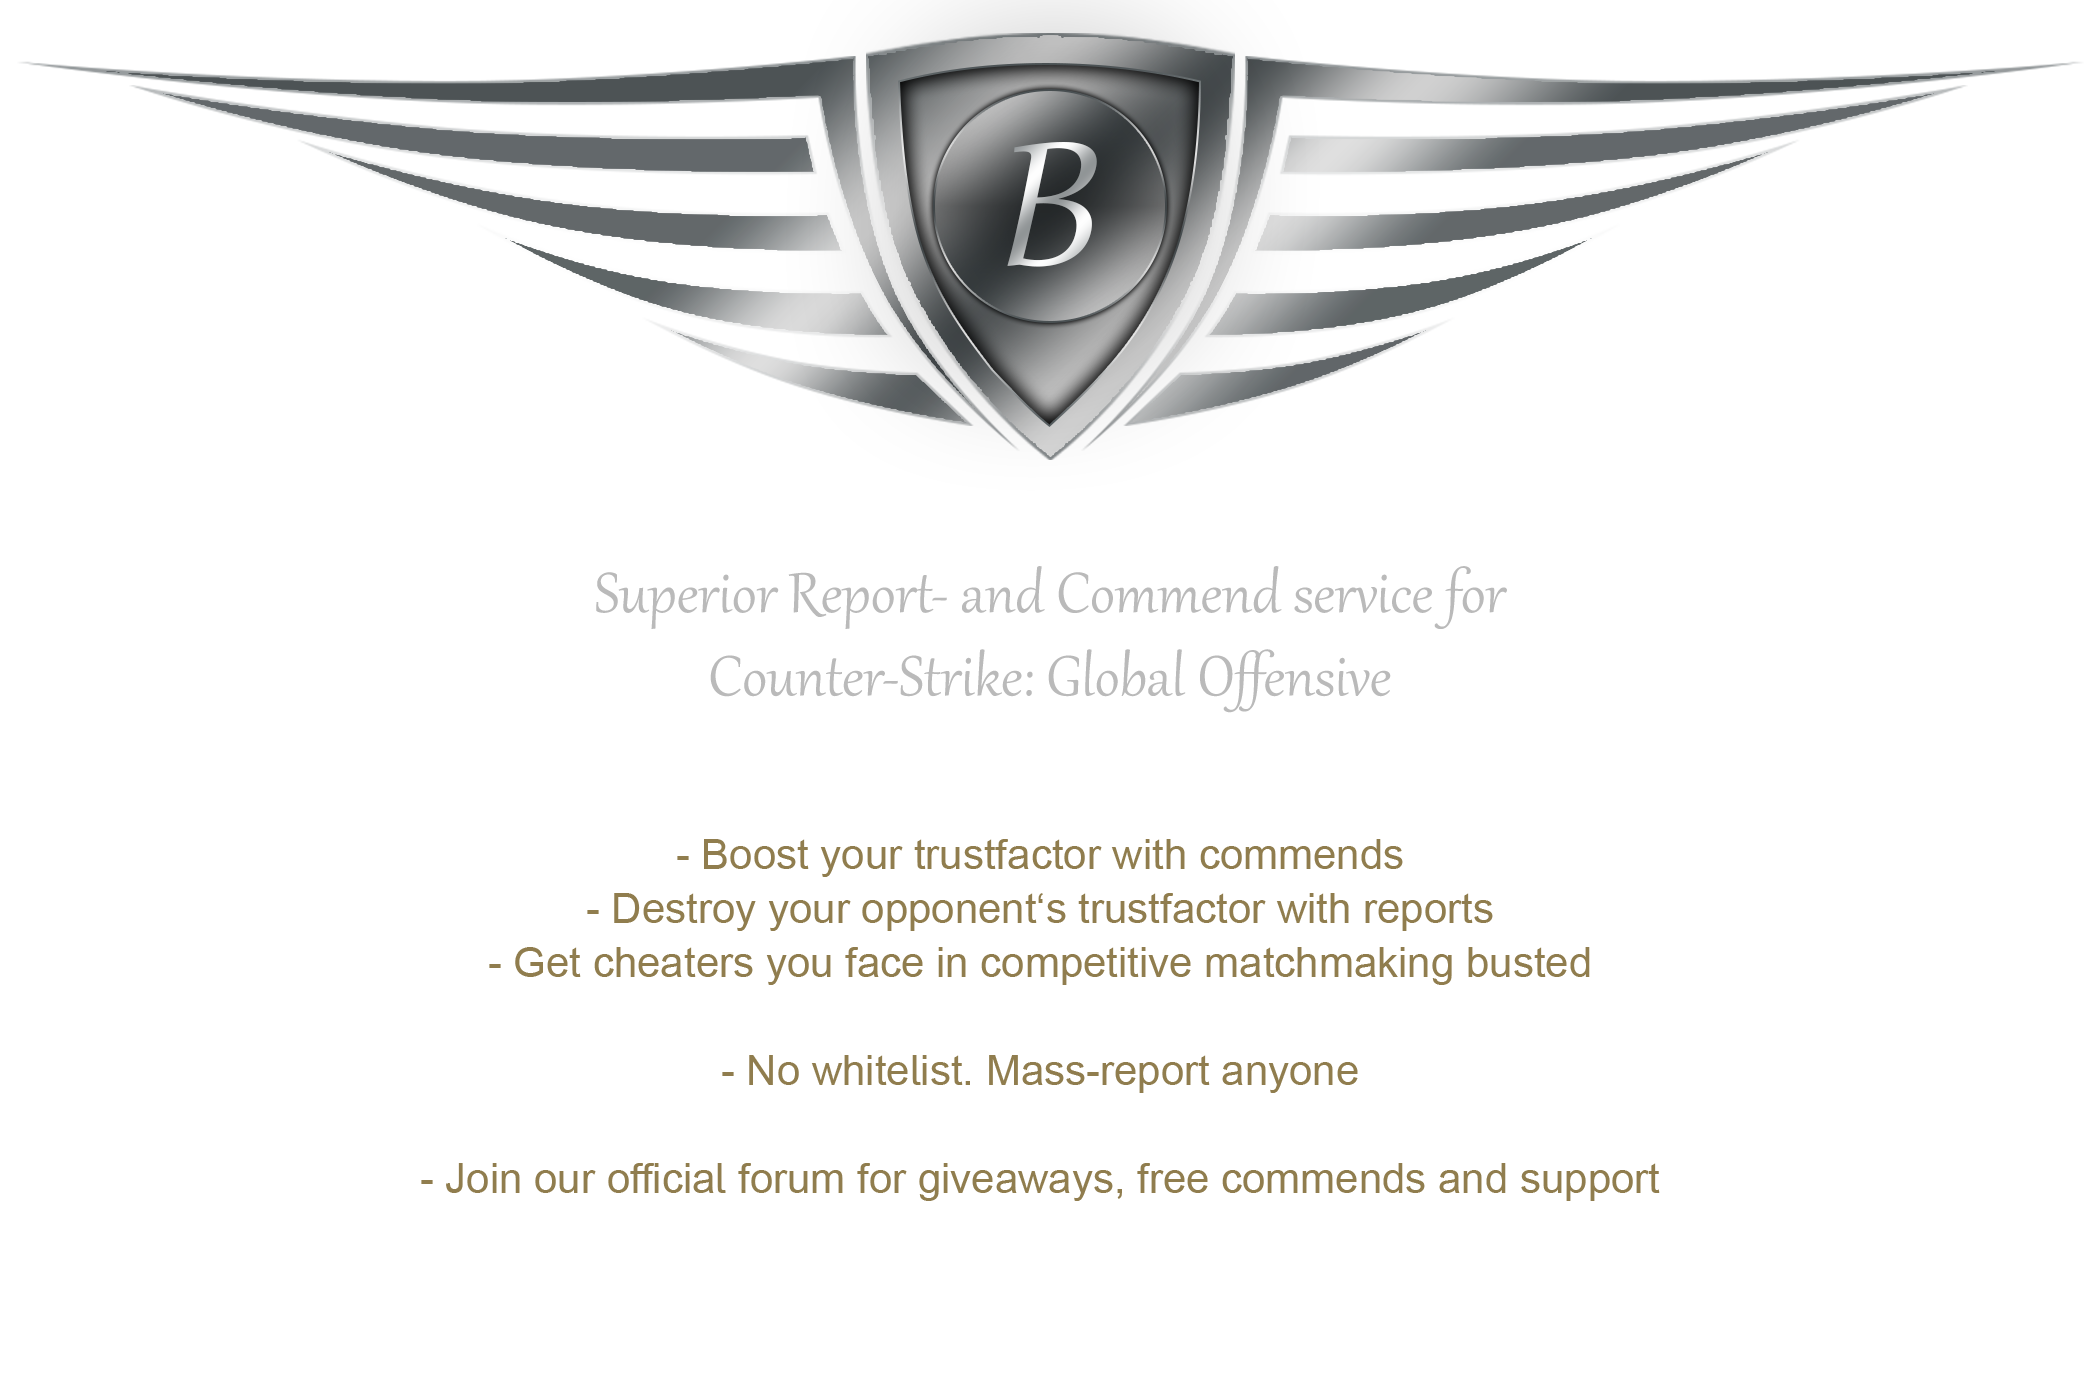 Superior report and commend service for counter-strike:global offesnive. experience the highest banrate thanks to our massive tracking program. instant support, talk to our admins any time. no whitelist, super low prices.